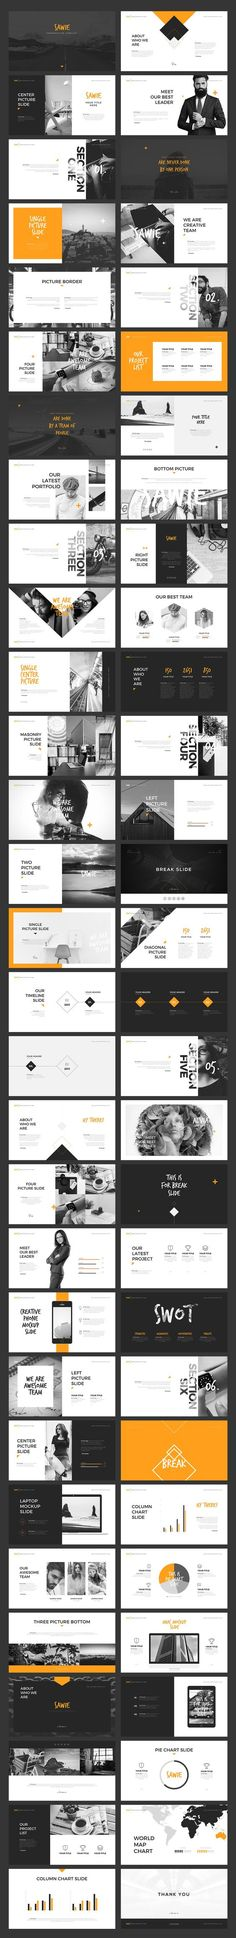 SAWIE PowerPoint Template by Angkalimabelas on @creativemarket: